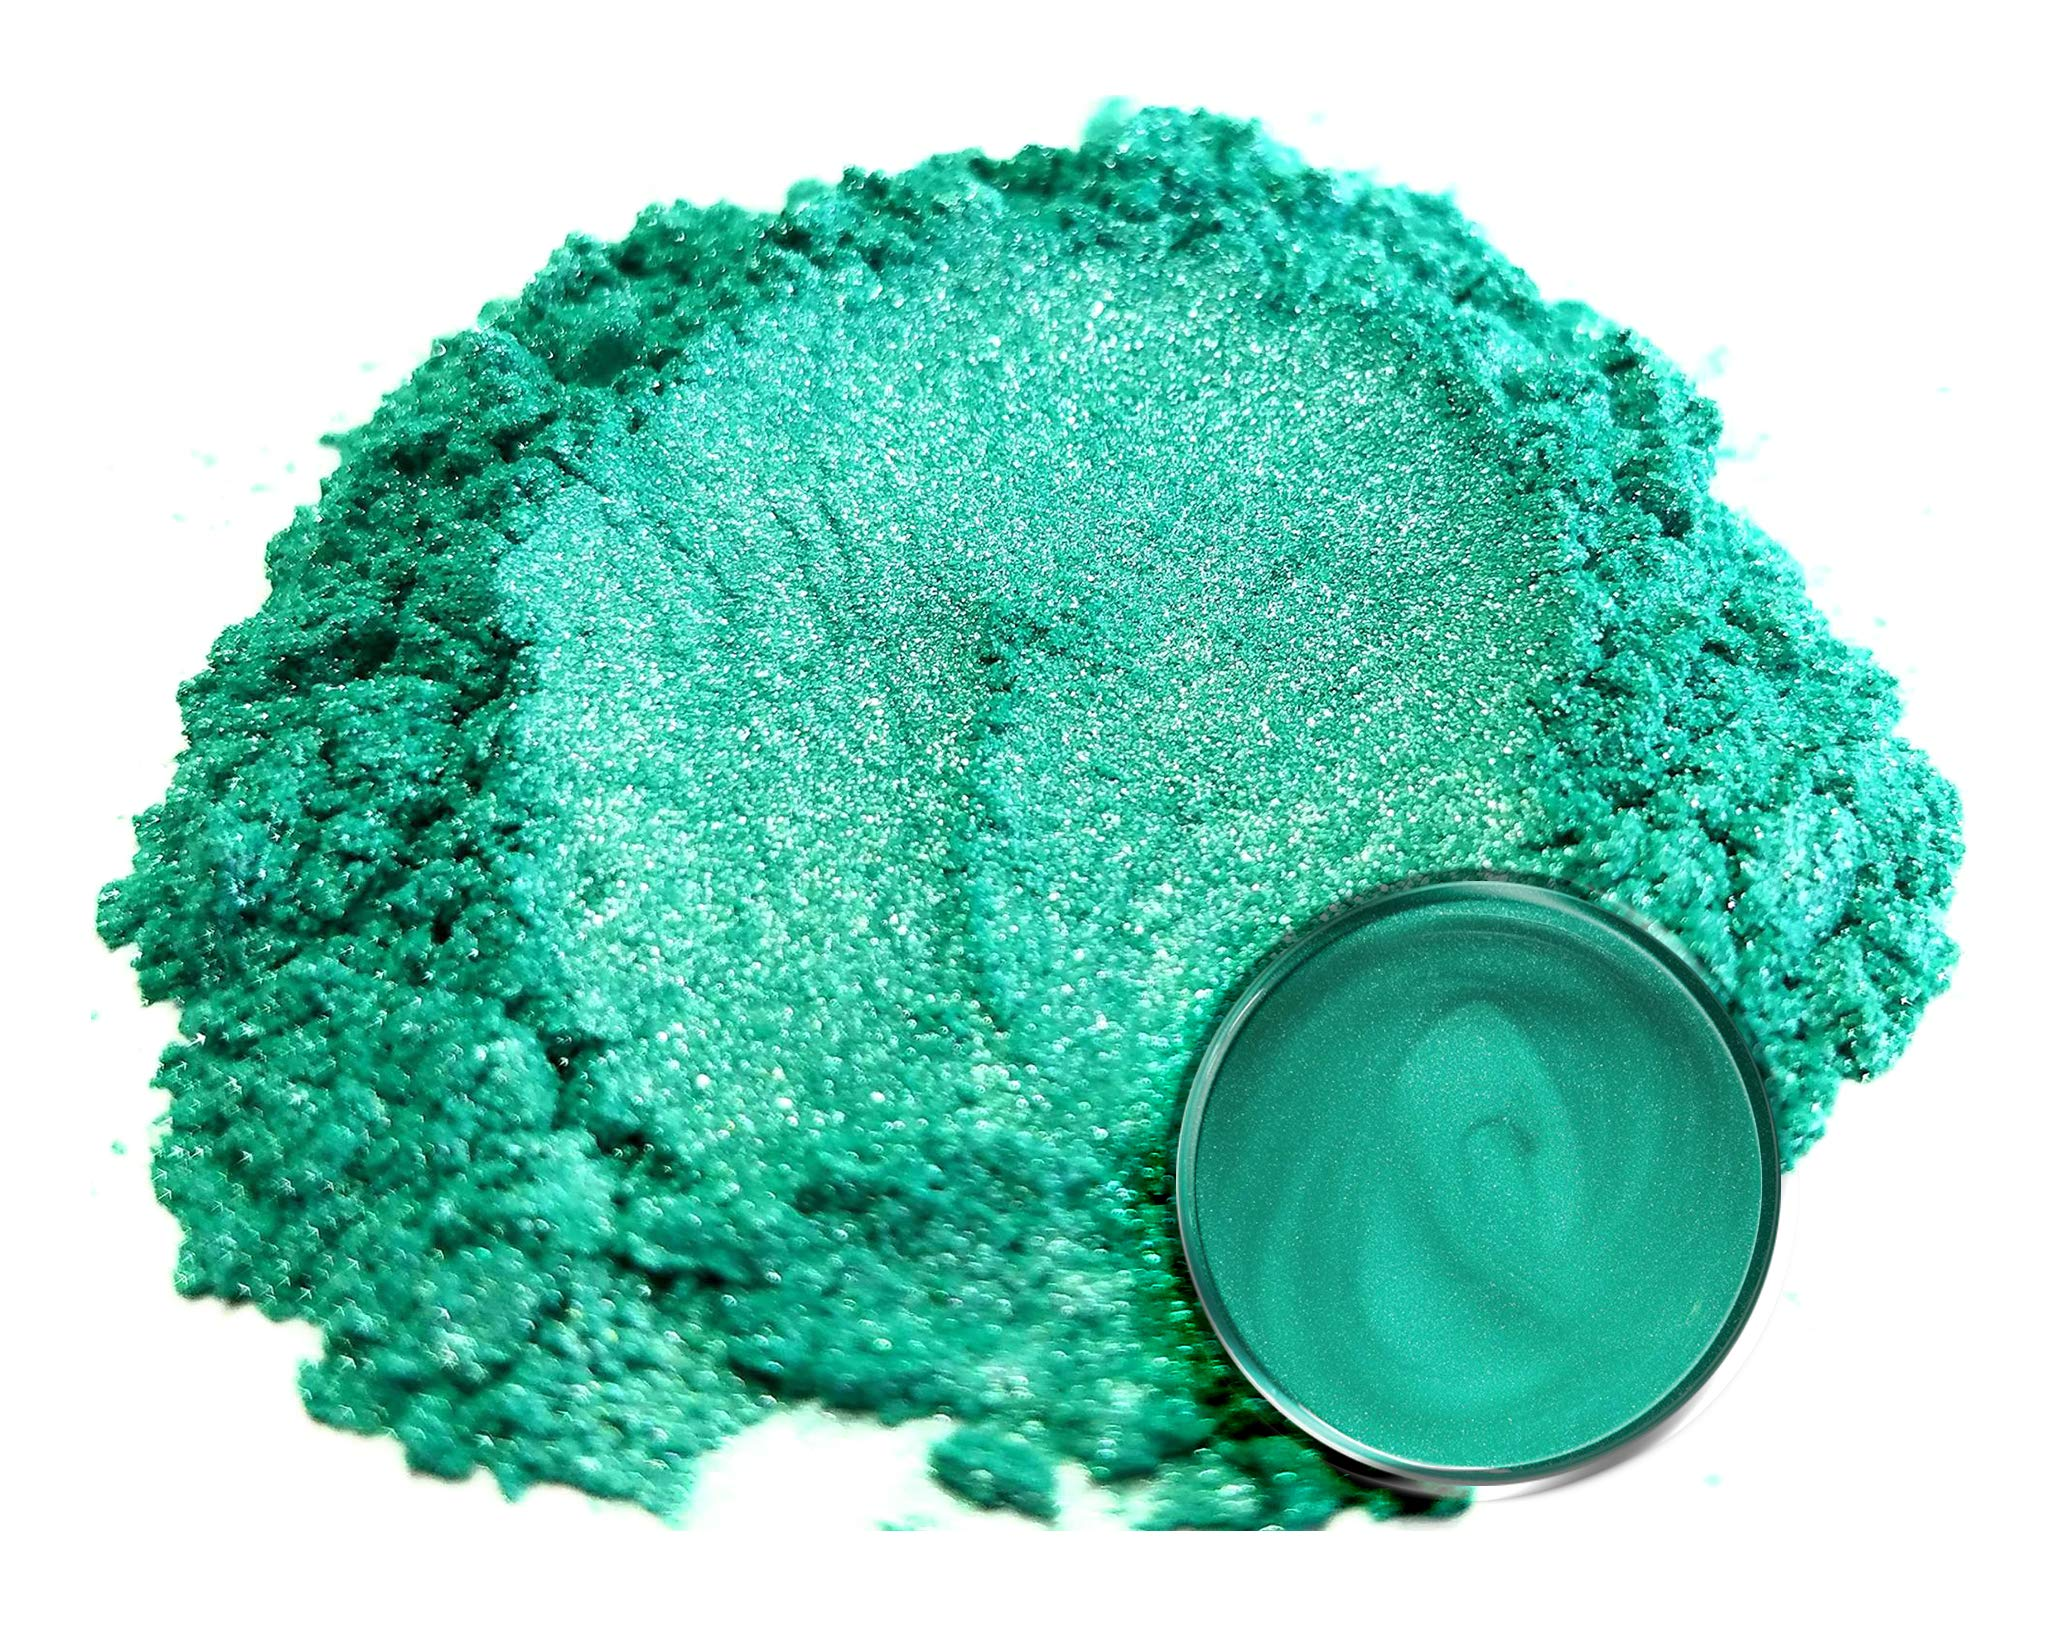 Mica Powder Pigment ''Wasabi Green'' (50g) Multipurpose DIY Arts and Crafts Additive | Woodworking, Epoxy, Resin, Natural Bath Bombs, Paint, Soap, Nail Polish, Lip Balm by Eye Candy